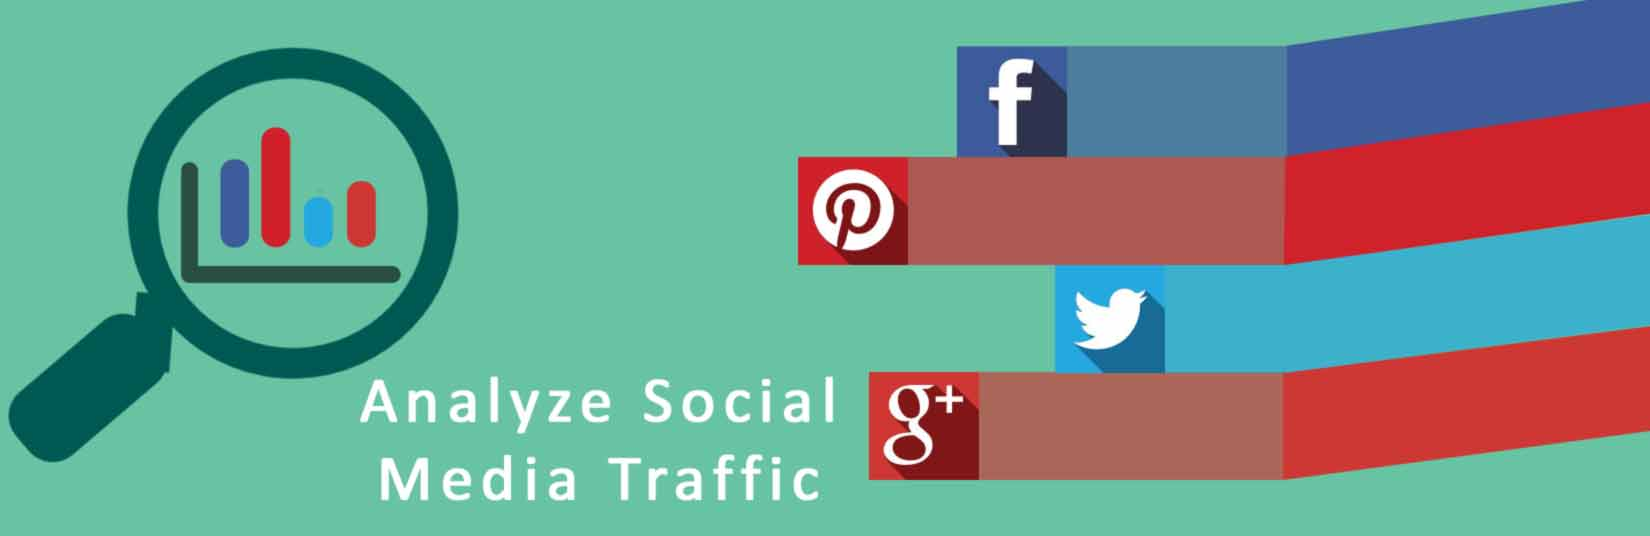 Analyze Social Media Traffic, Social Media Traffic,